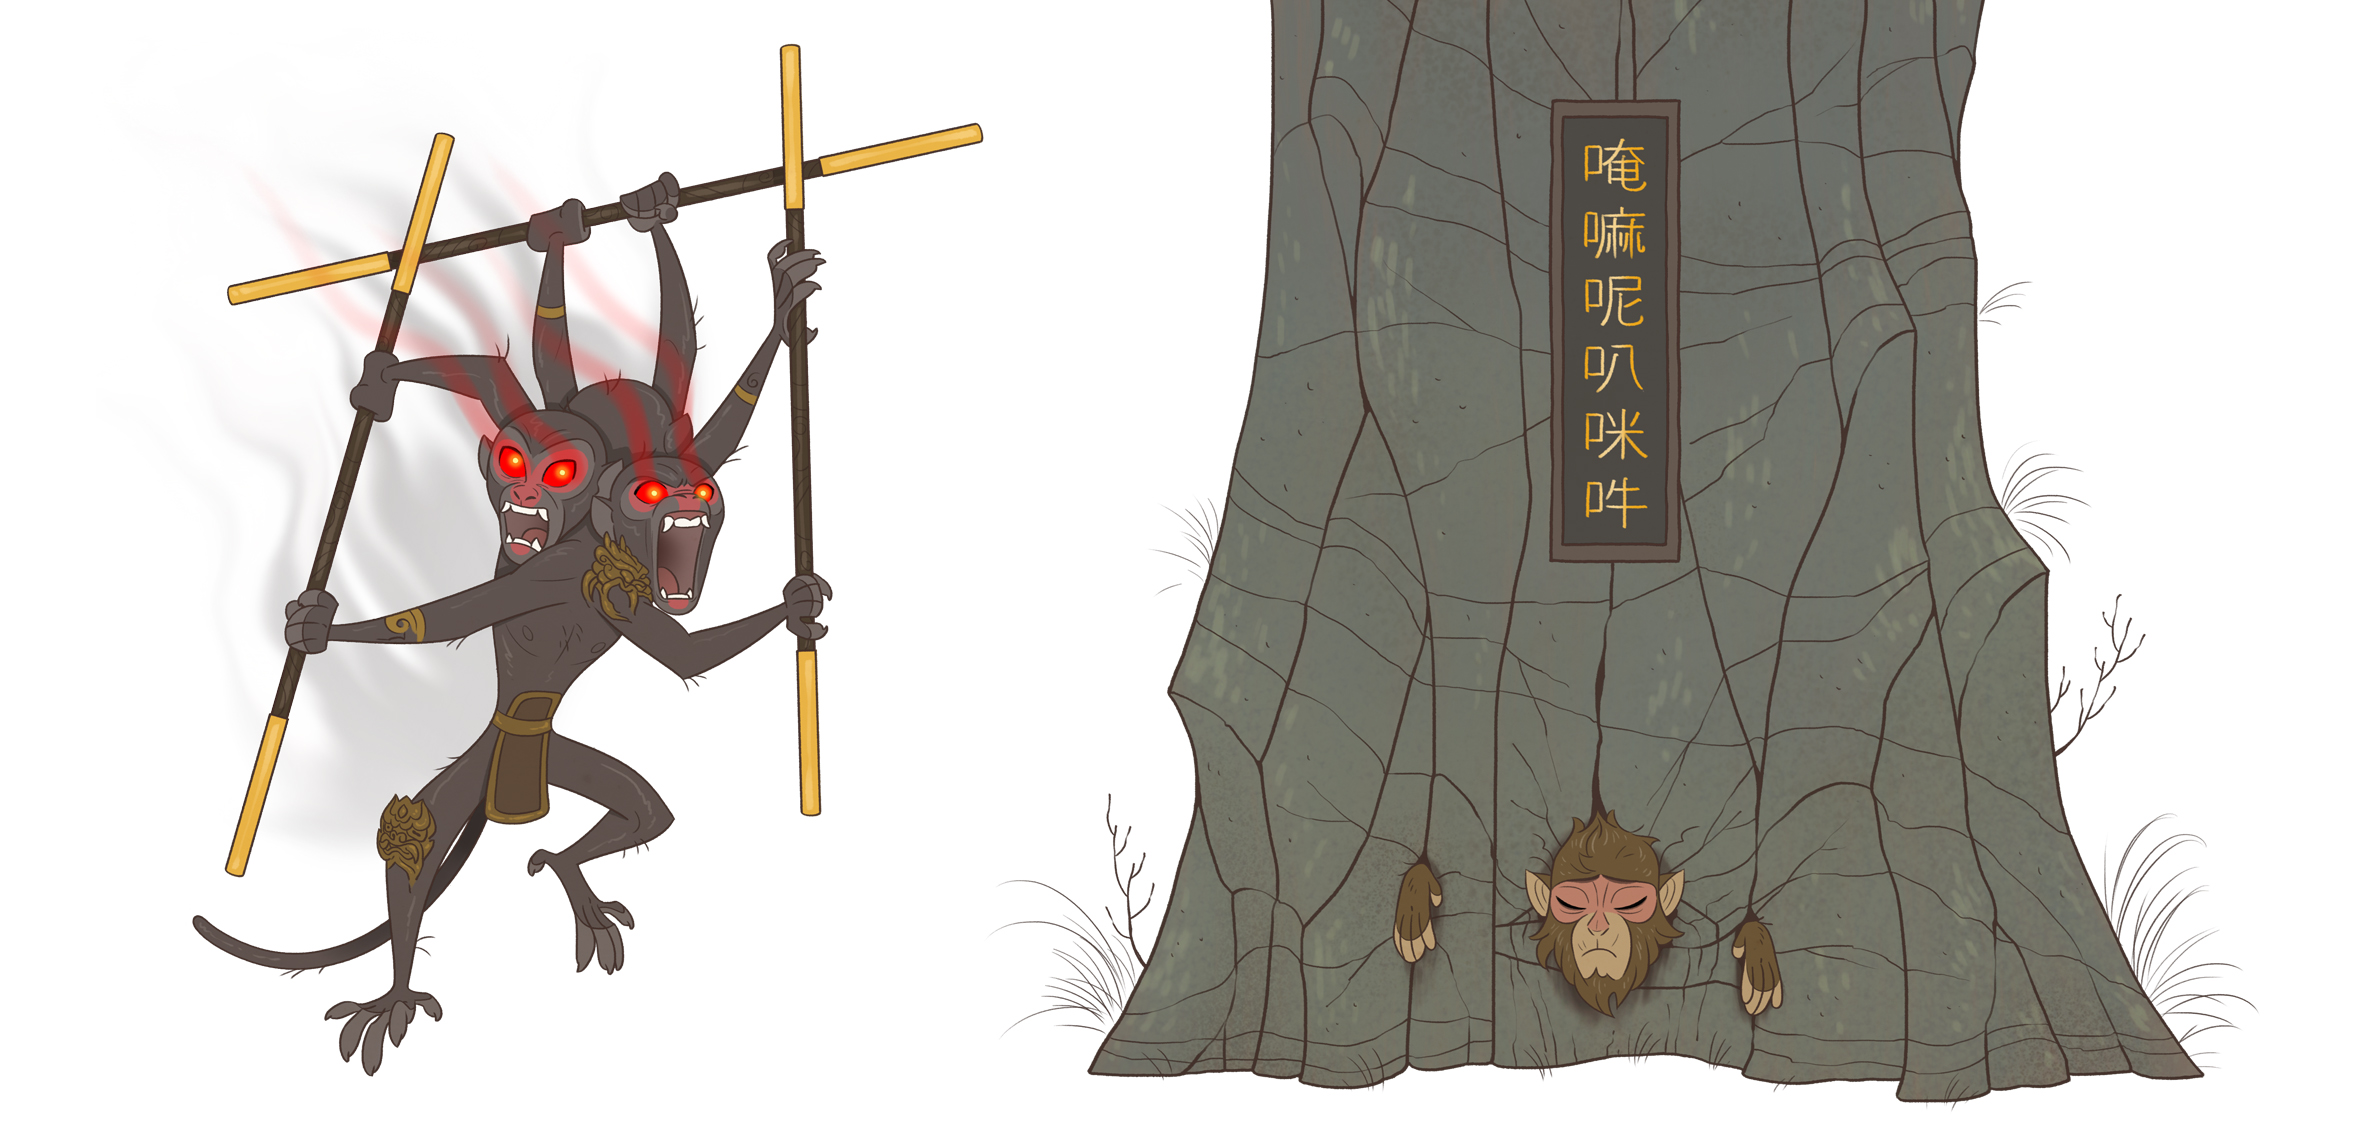 Sun Wukong from Journey to the West